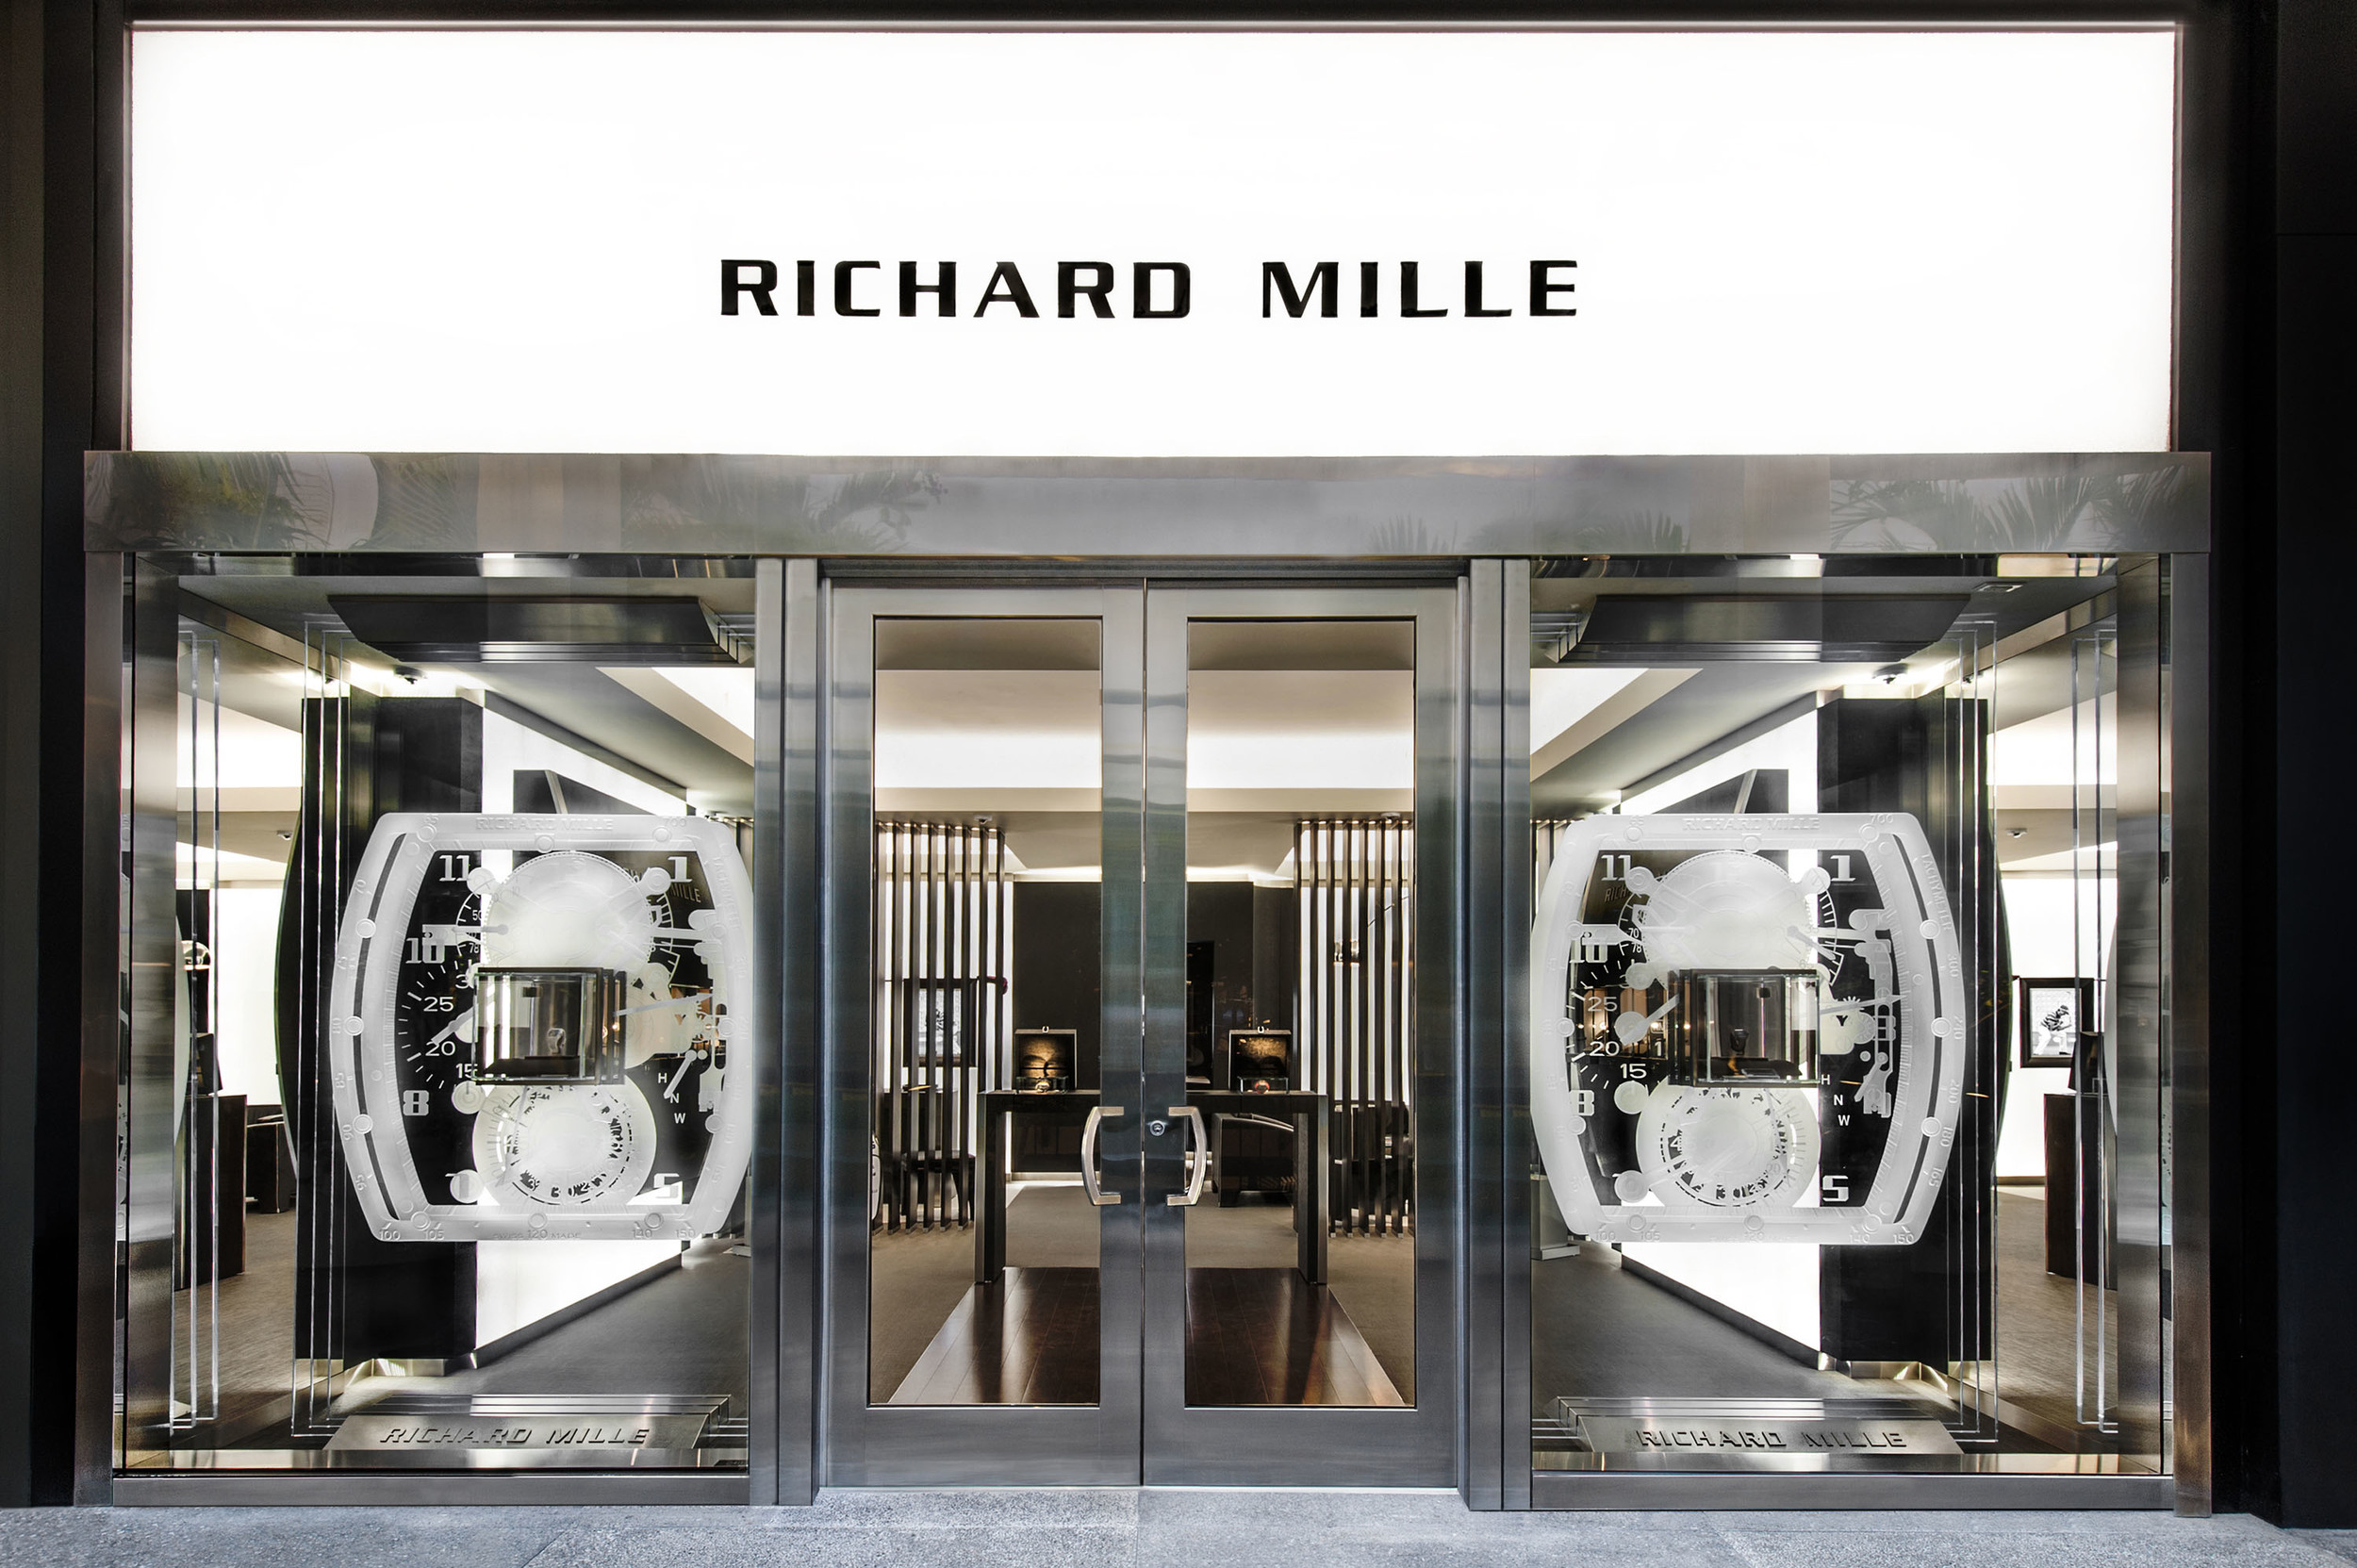 Two triple-pane glass sculptures in the shape of Richard Milleu0027s iconic tonneau watch flank the front door of the new boutique. & RICHARD MILLE OPENS THIRD BOUTIQUE IN AMERICA AT THE BAL HARBOUR ...